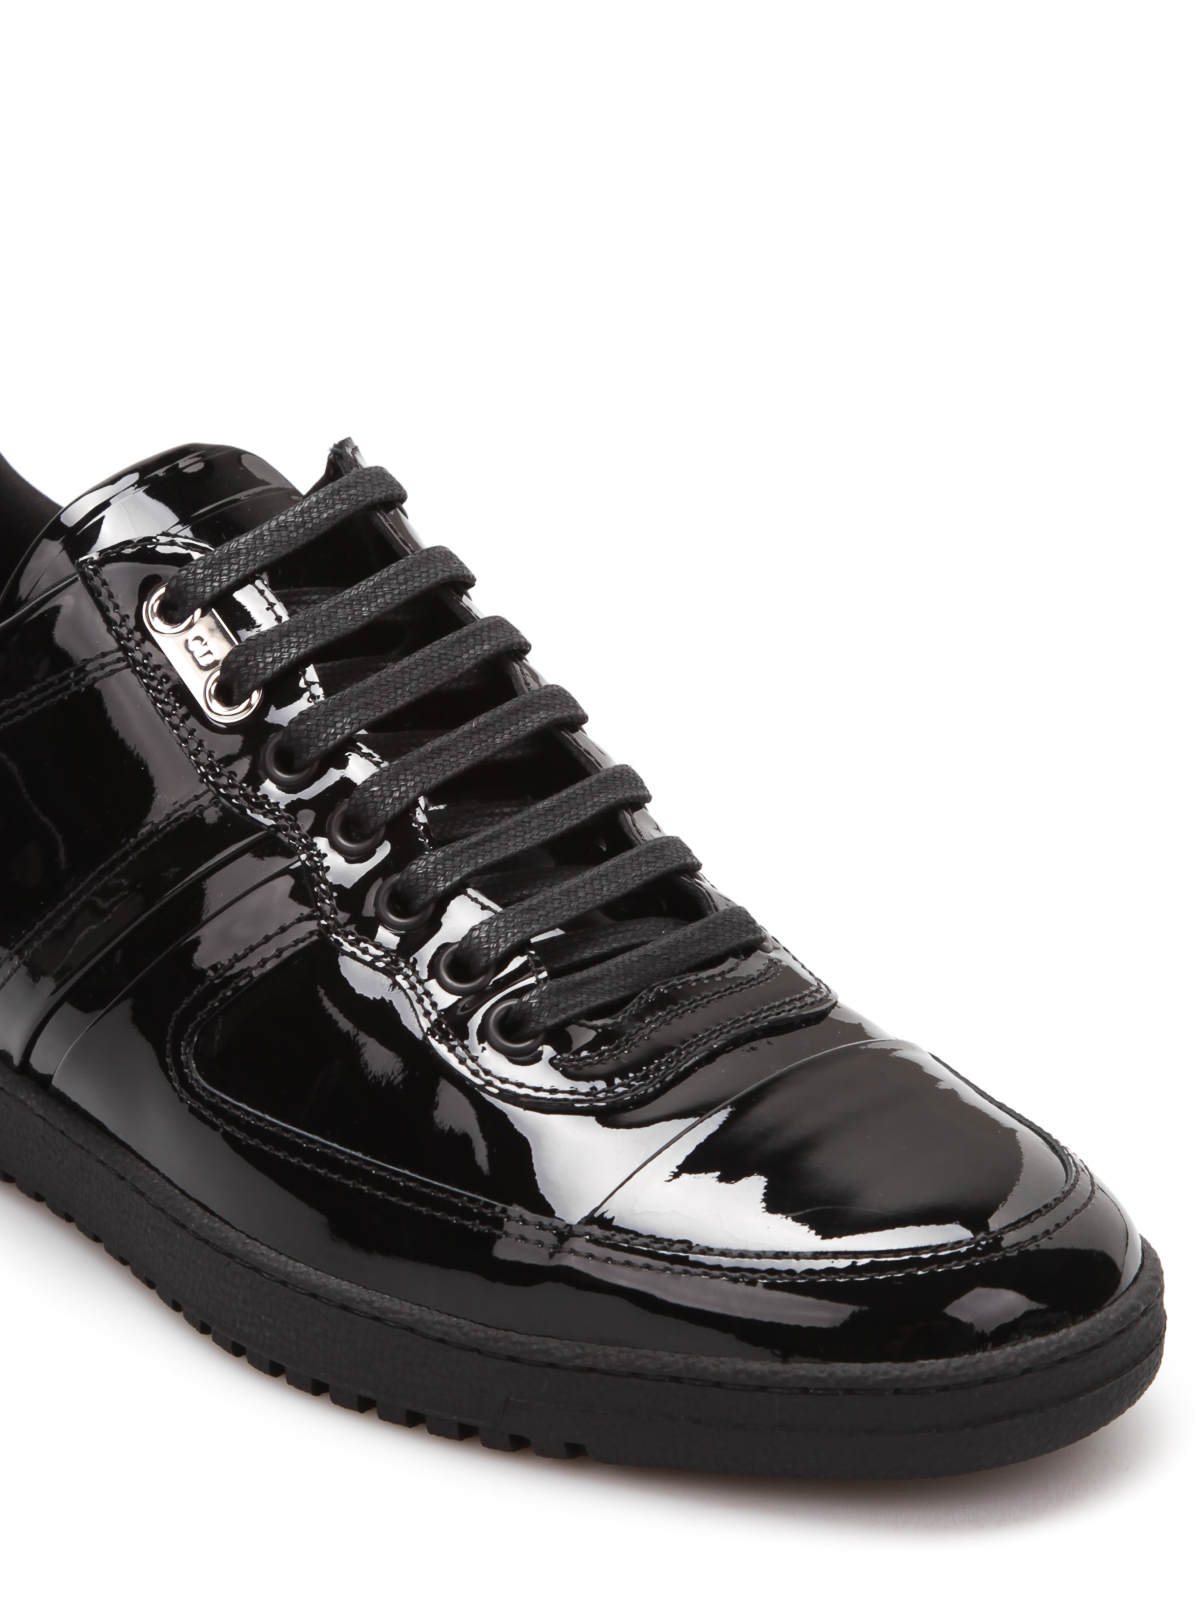 Dior Patent Leather Trainers e9nAFxT